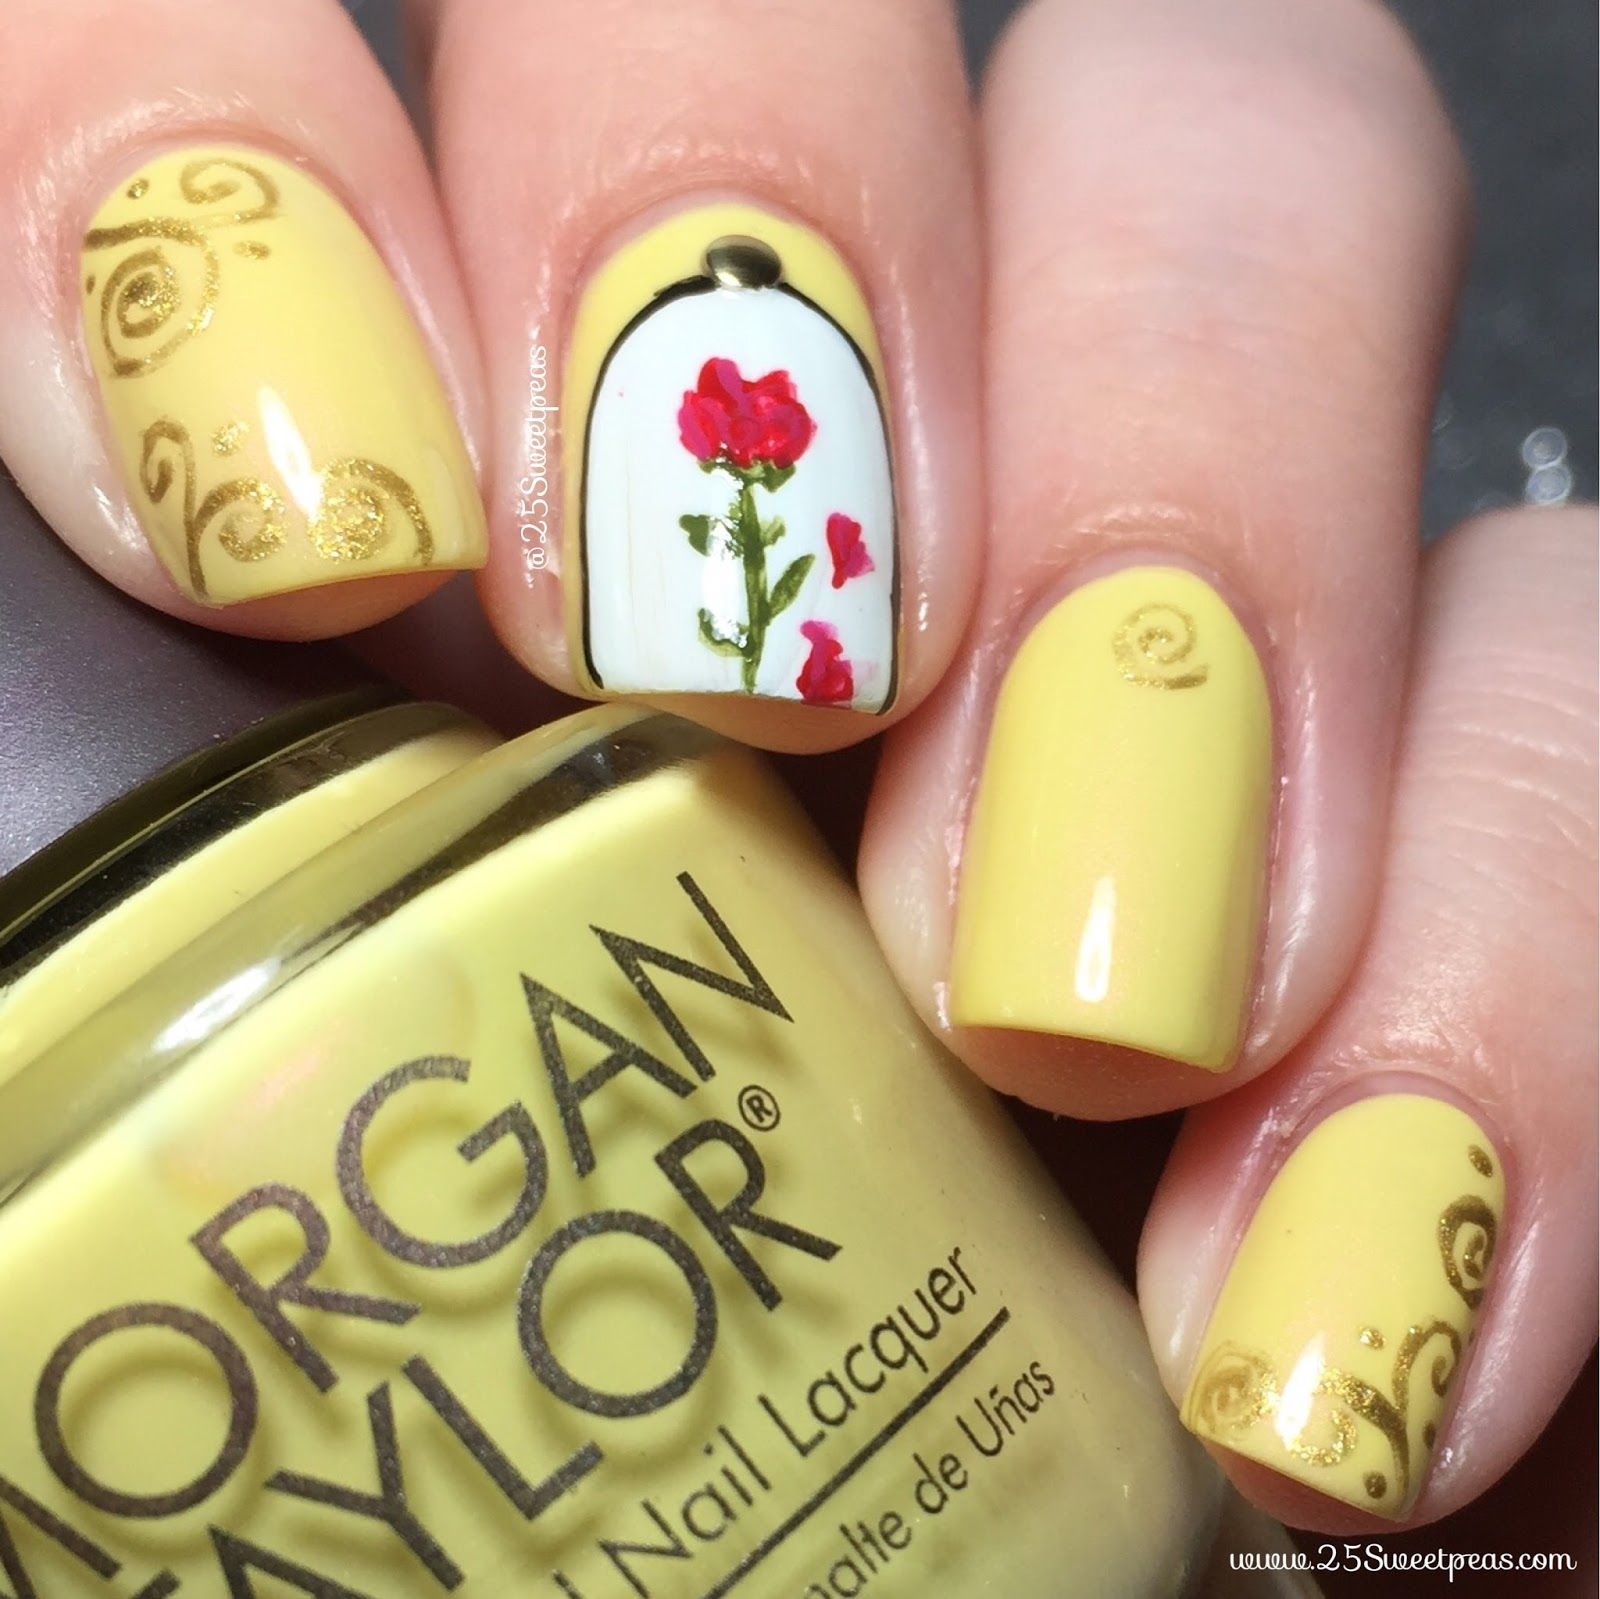 The Nail Art And Beauty Diaries: Beauty, The Beast Nails